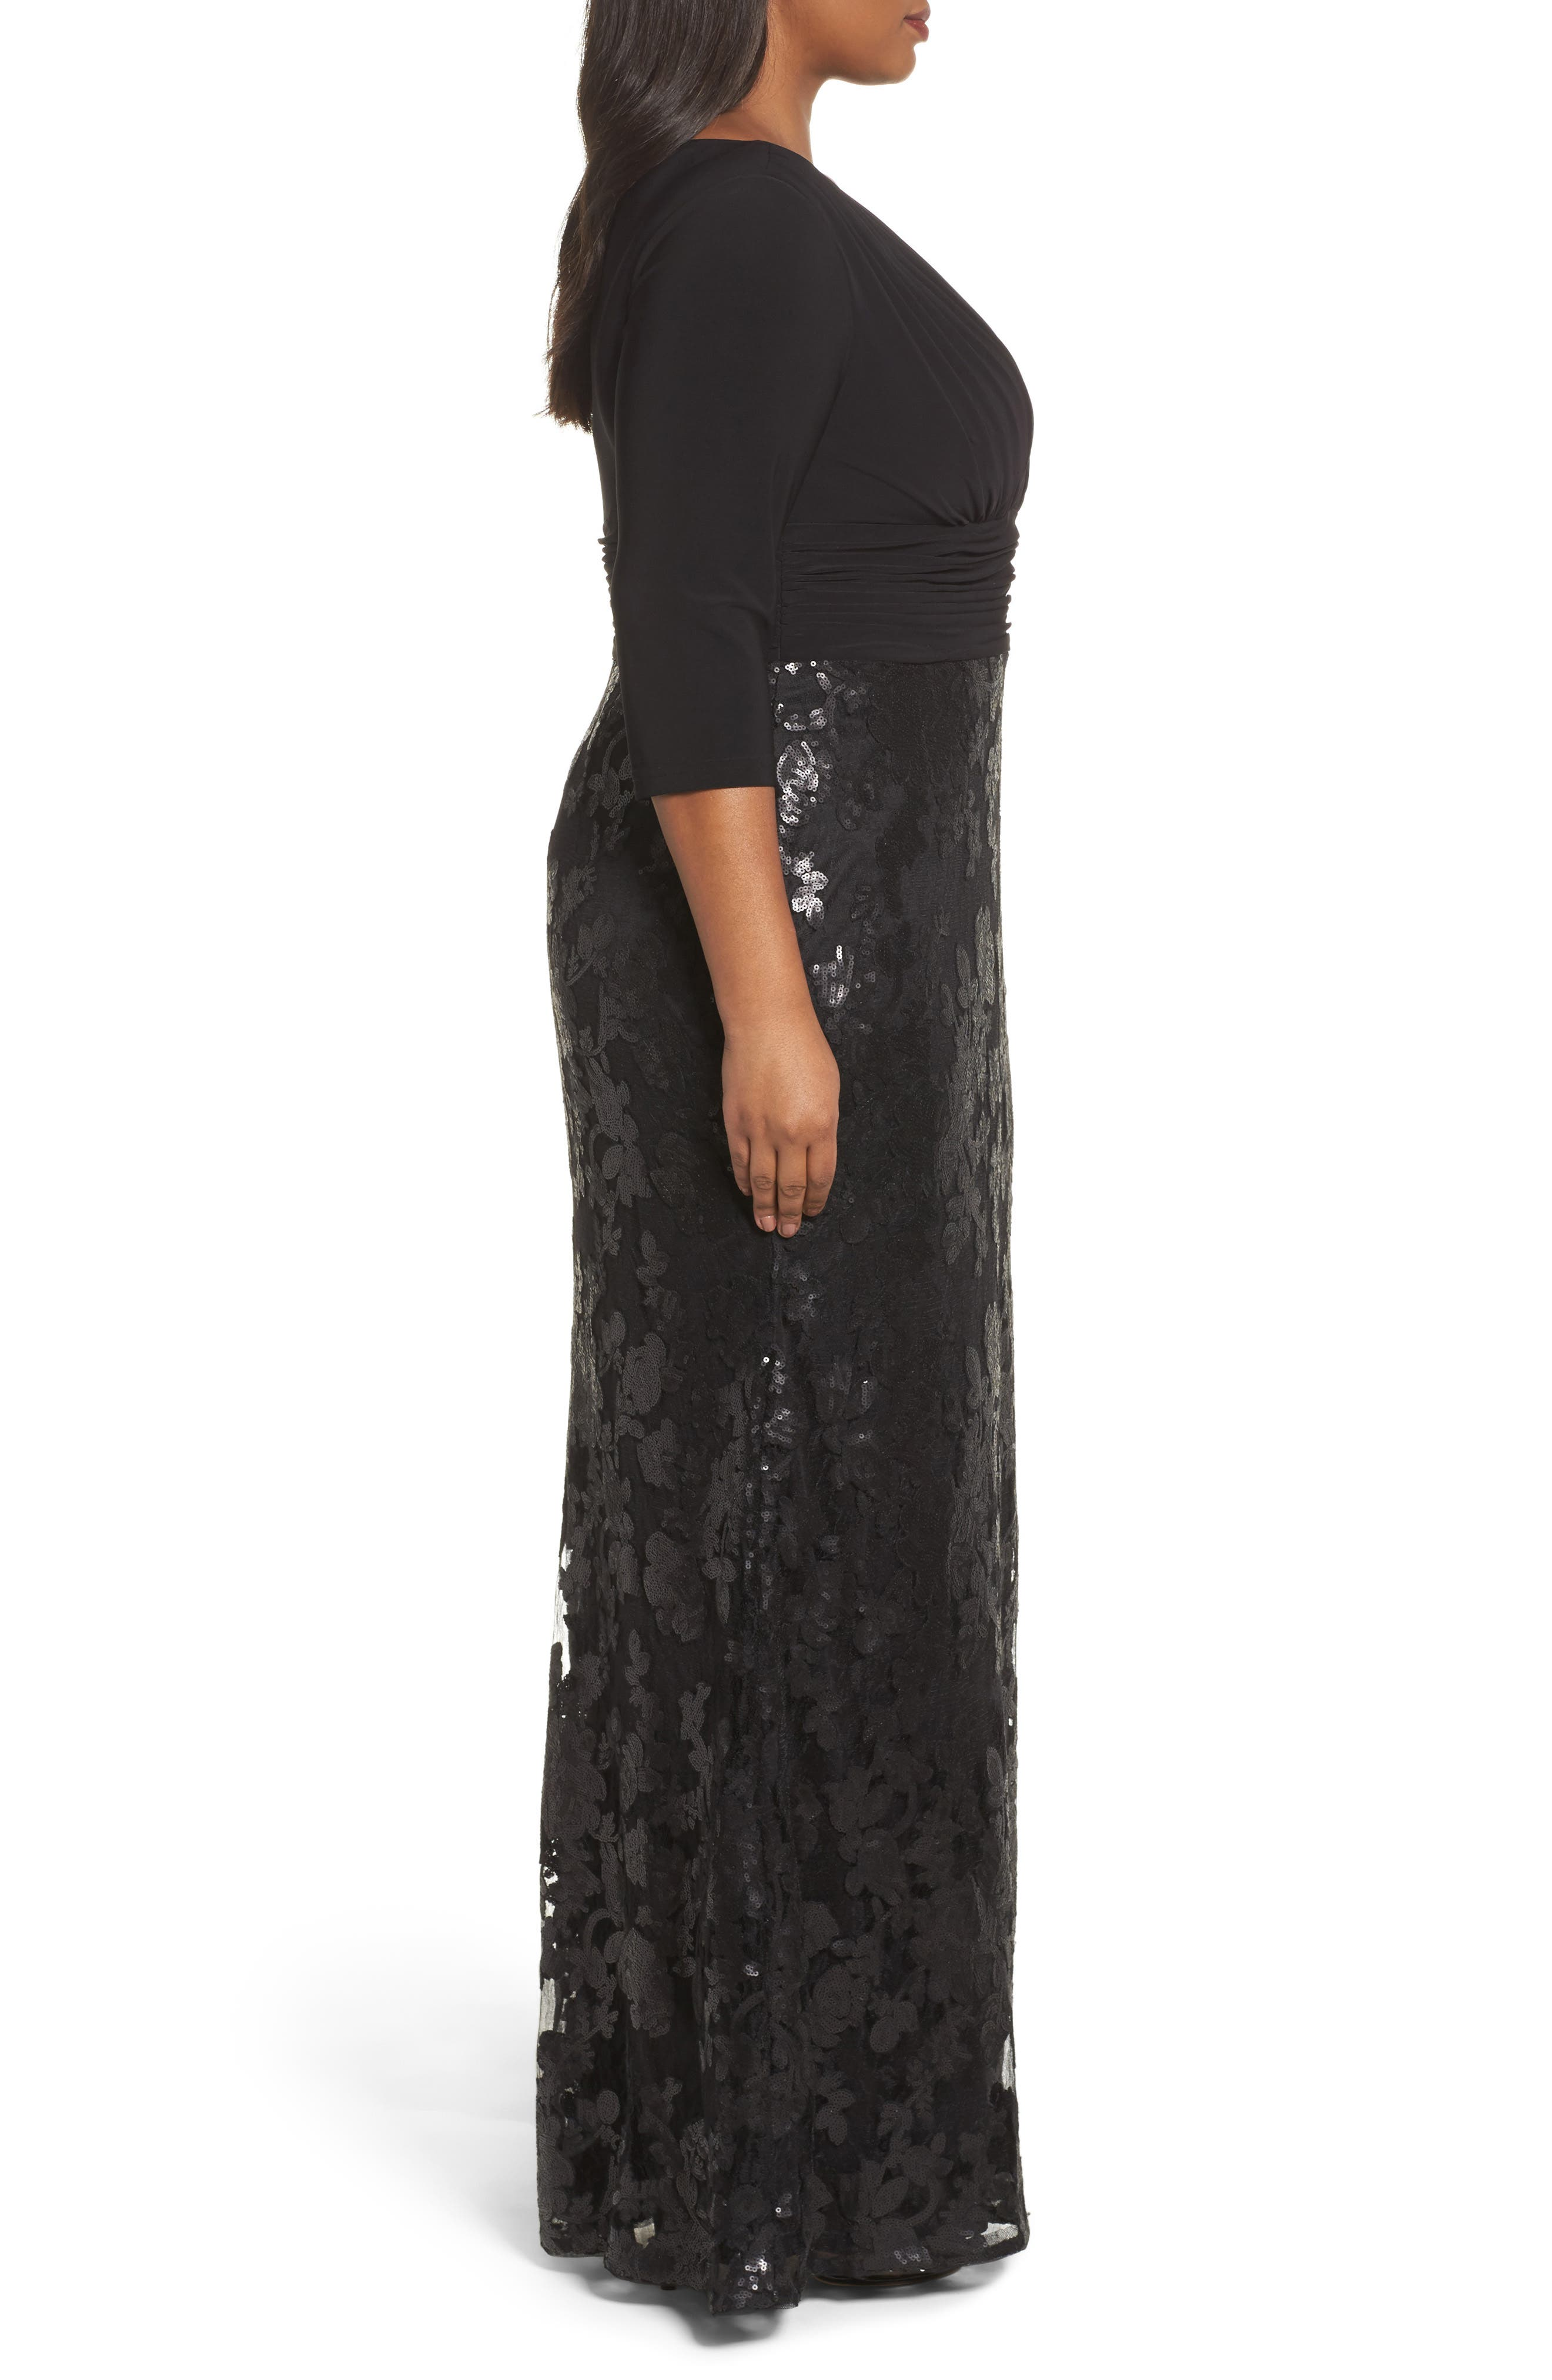 ADRIANNA PAPELL,                             Jersey & Sequin Lace Gown,                             Alternate thumbnail 3, color,                             002